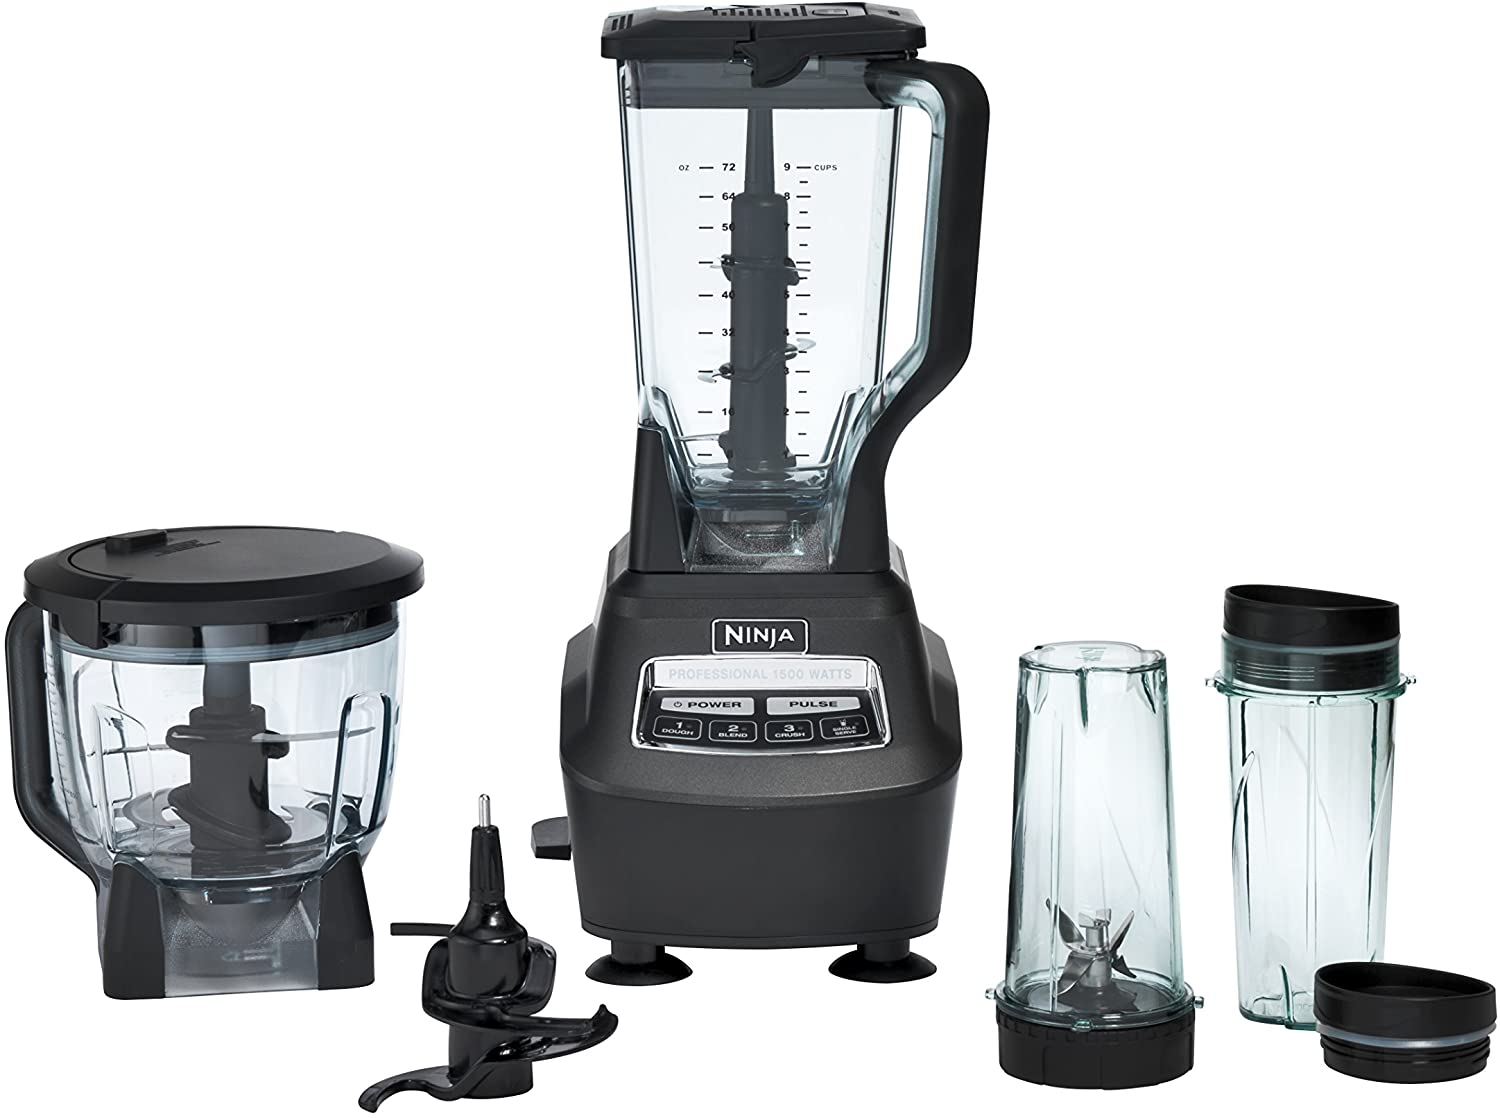 Ninja Blender reviews [2020]